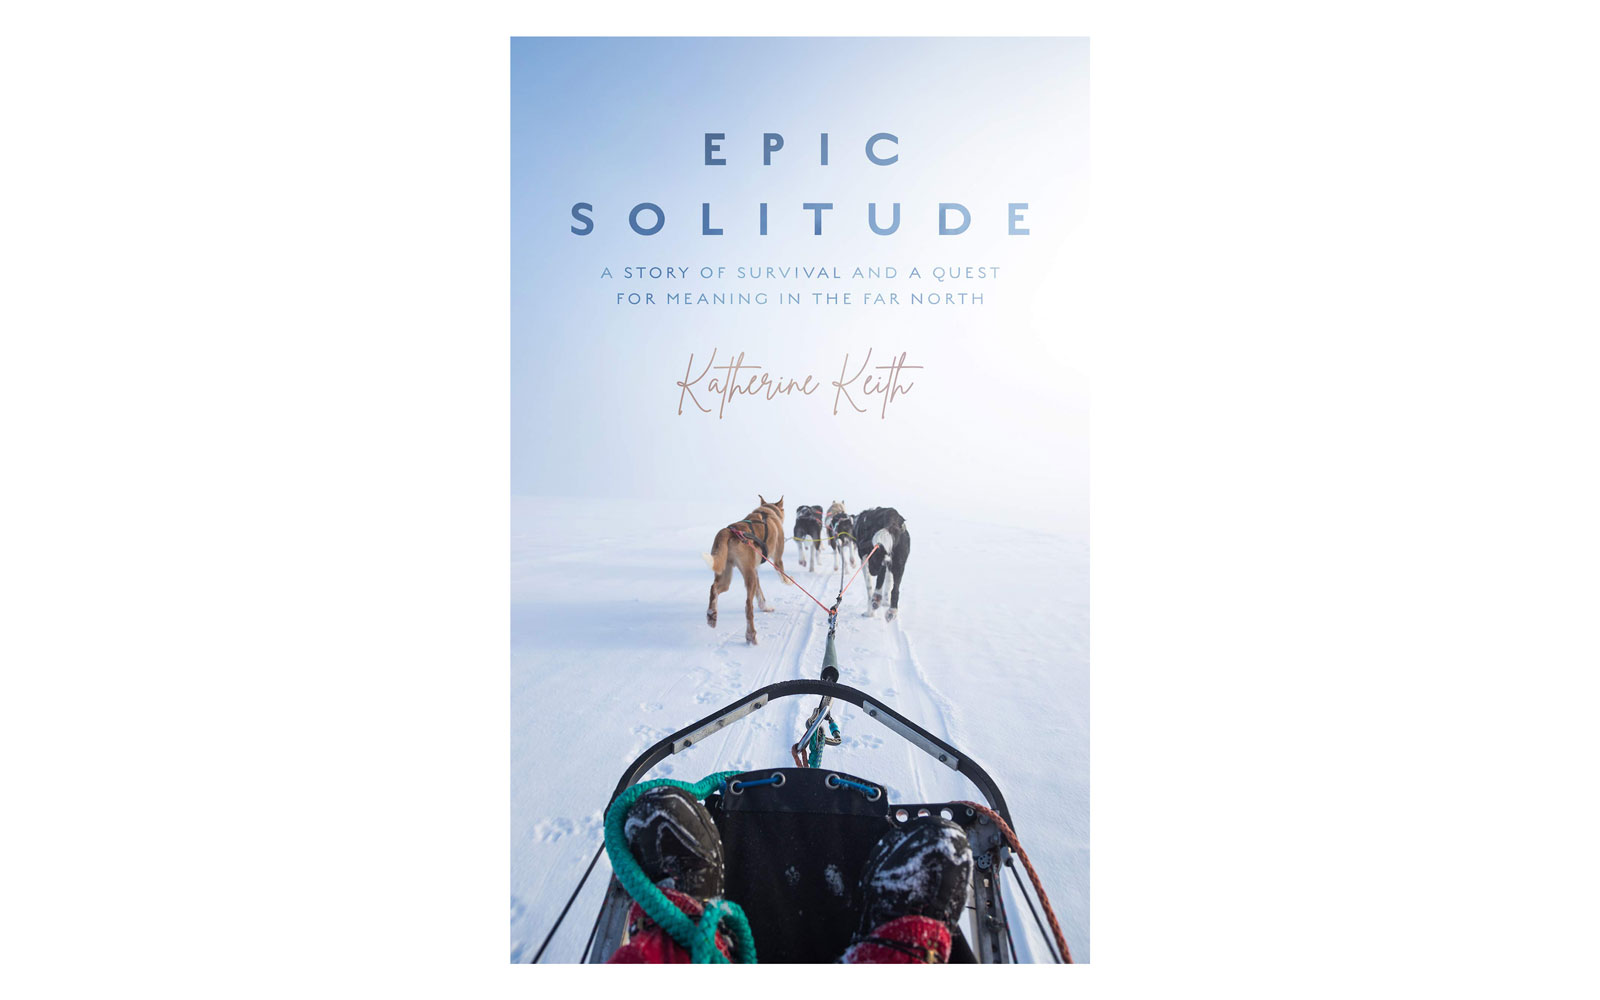 Epic Solitude book